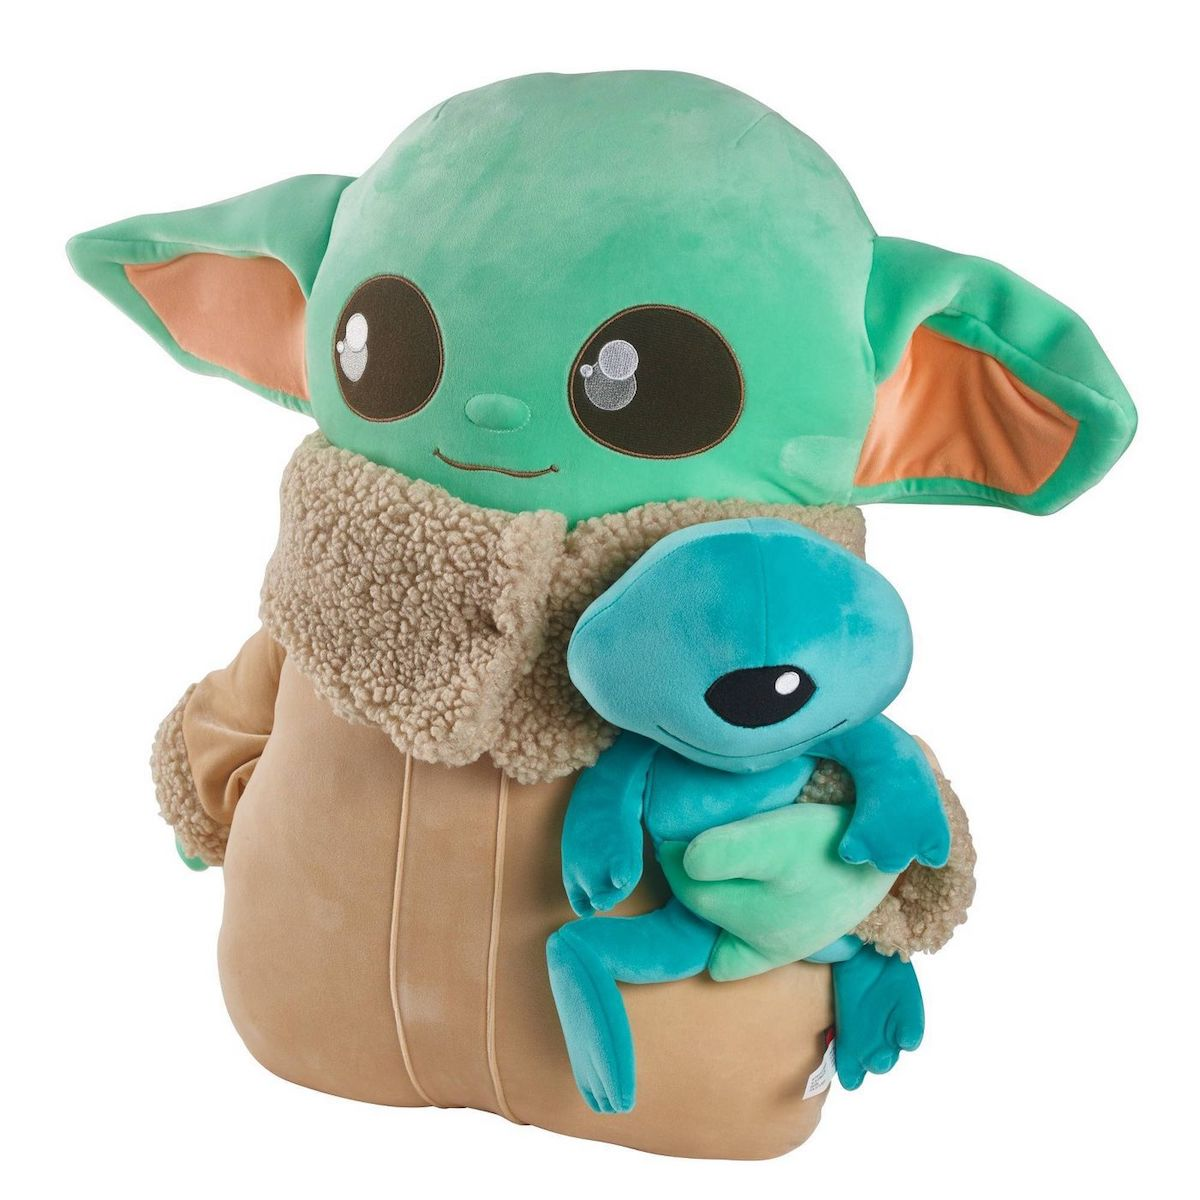 Giant BABY YODA Plush is Bigger than The Real Child_2